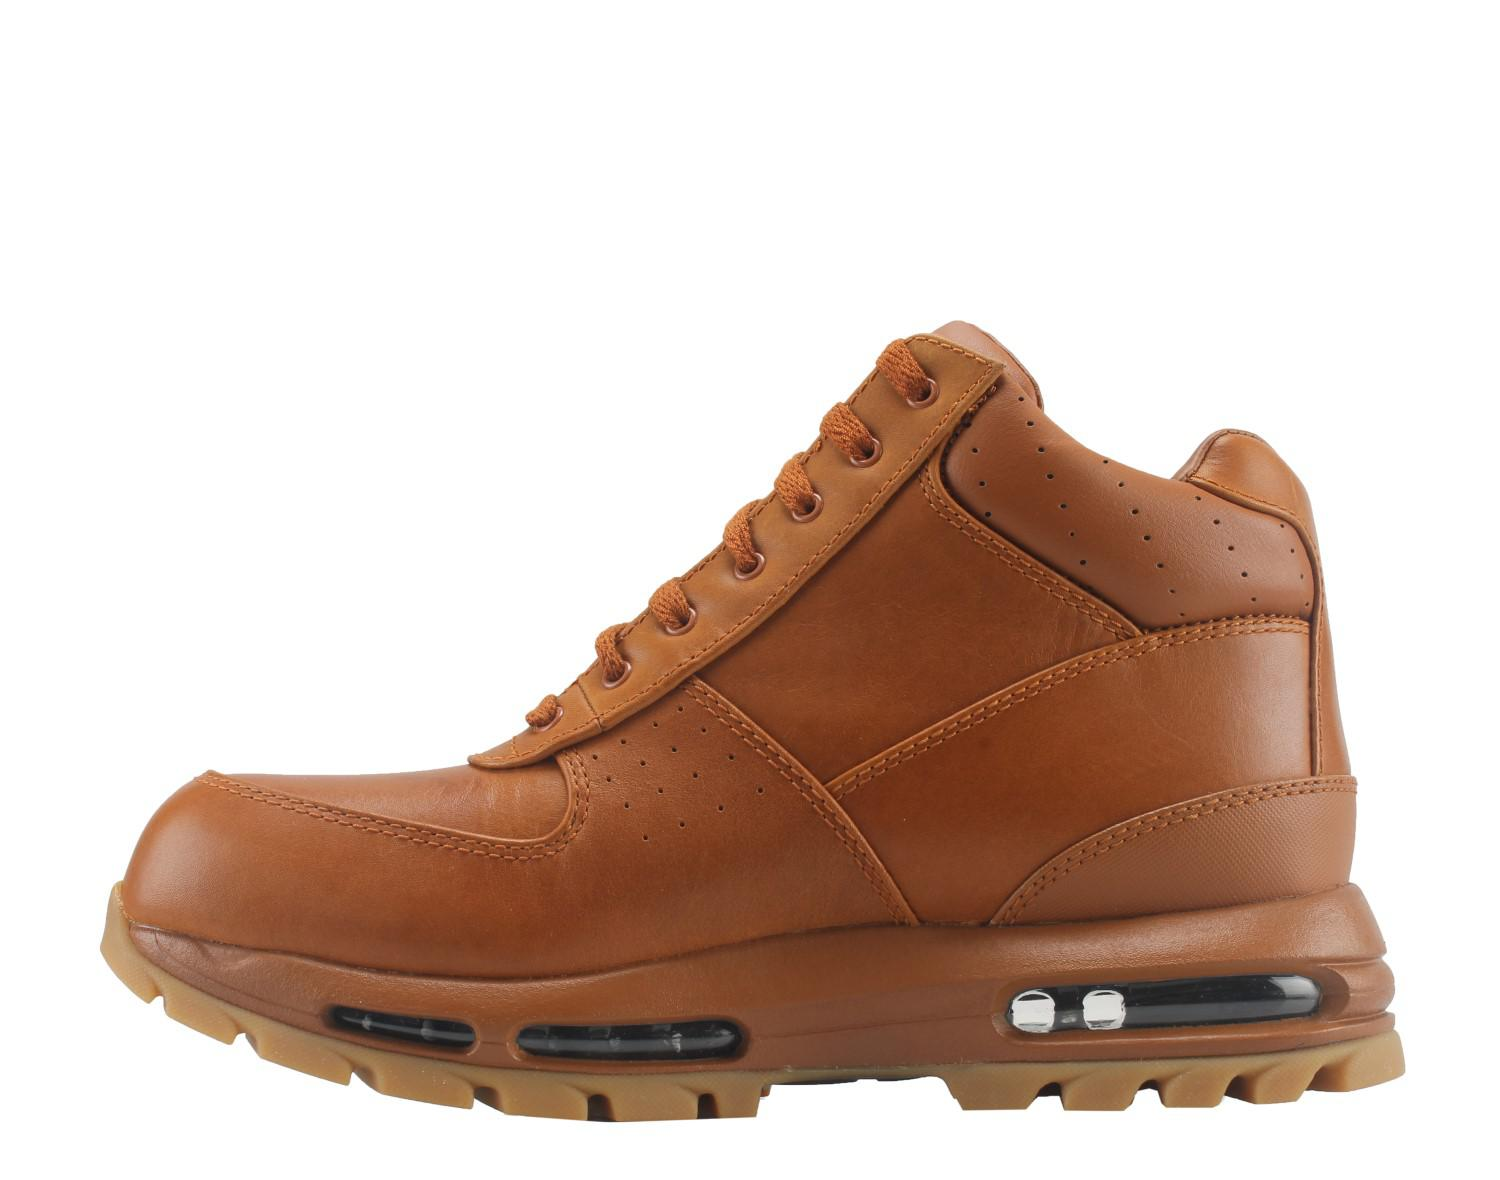 Lyst - Nike Air Max Goadome Acg Boots Size 12 in Brown for Men 0d08575943e4